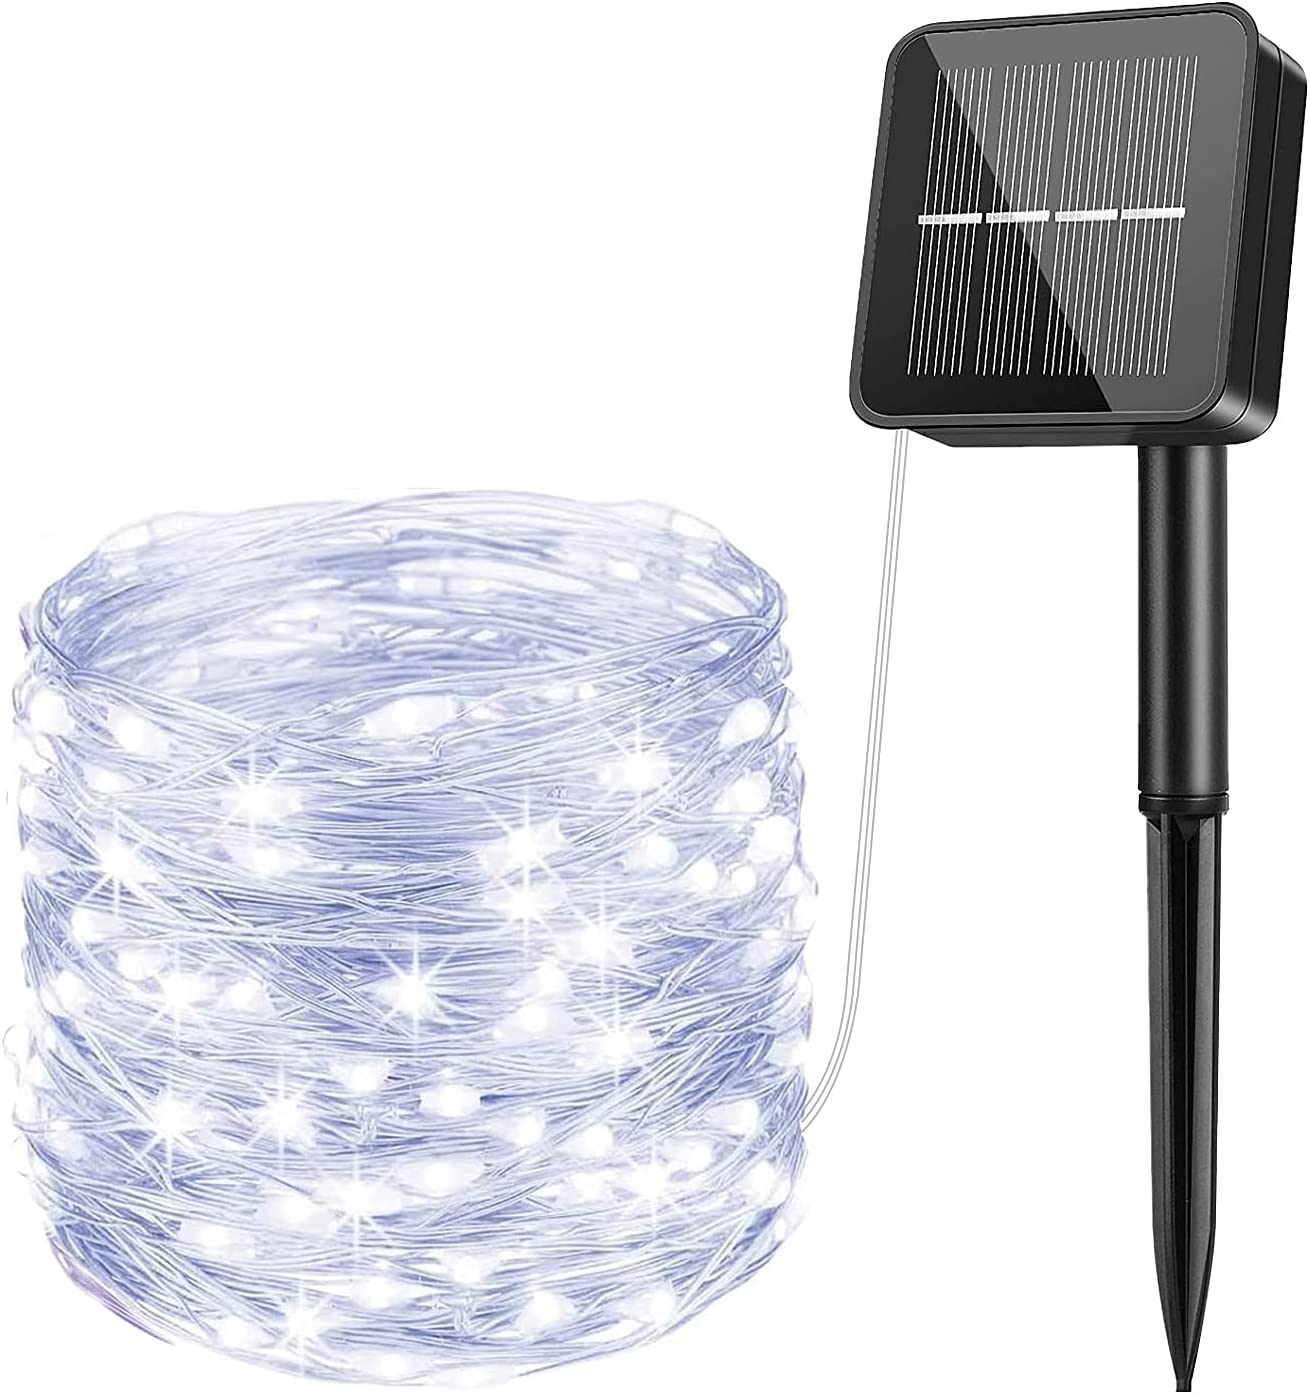 Solar String Lights Outdoor 85Ft 240 LED USB/Solar Powered Waterproof Garden Lights with 8 Lighting Modes Solar Fairy Lights for Indoor/Outdoor, Cool White